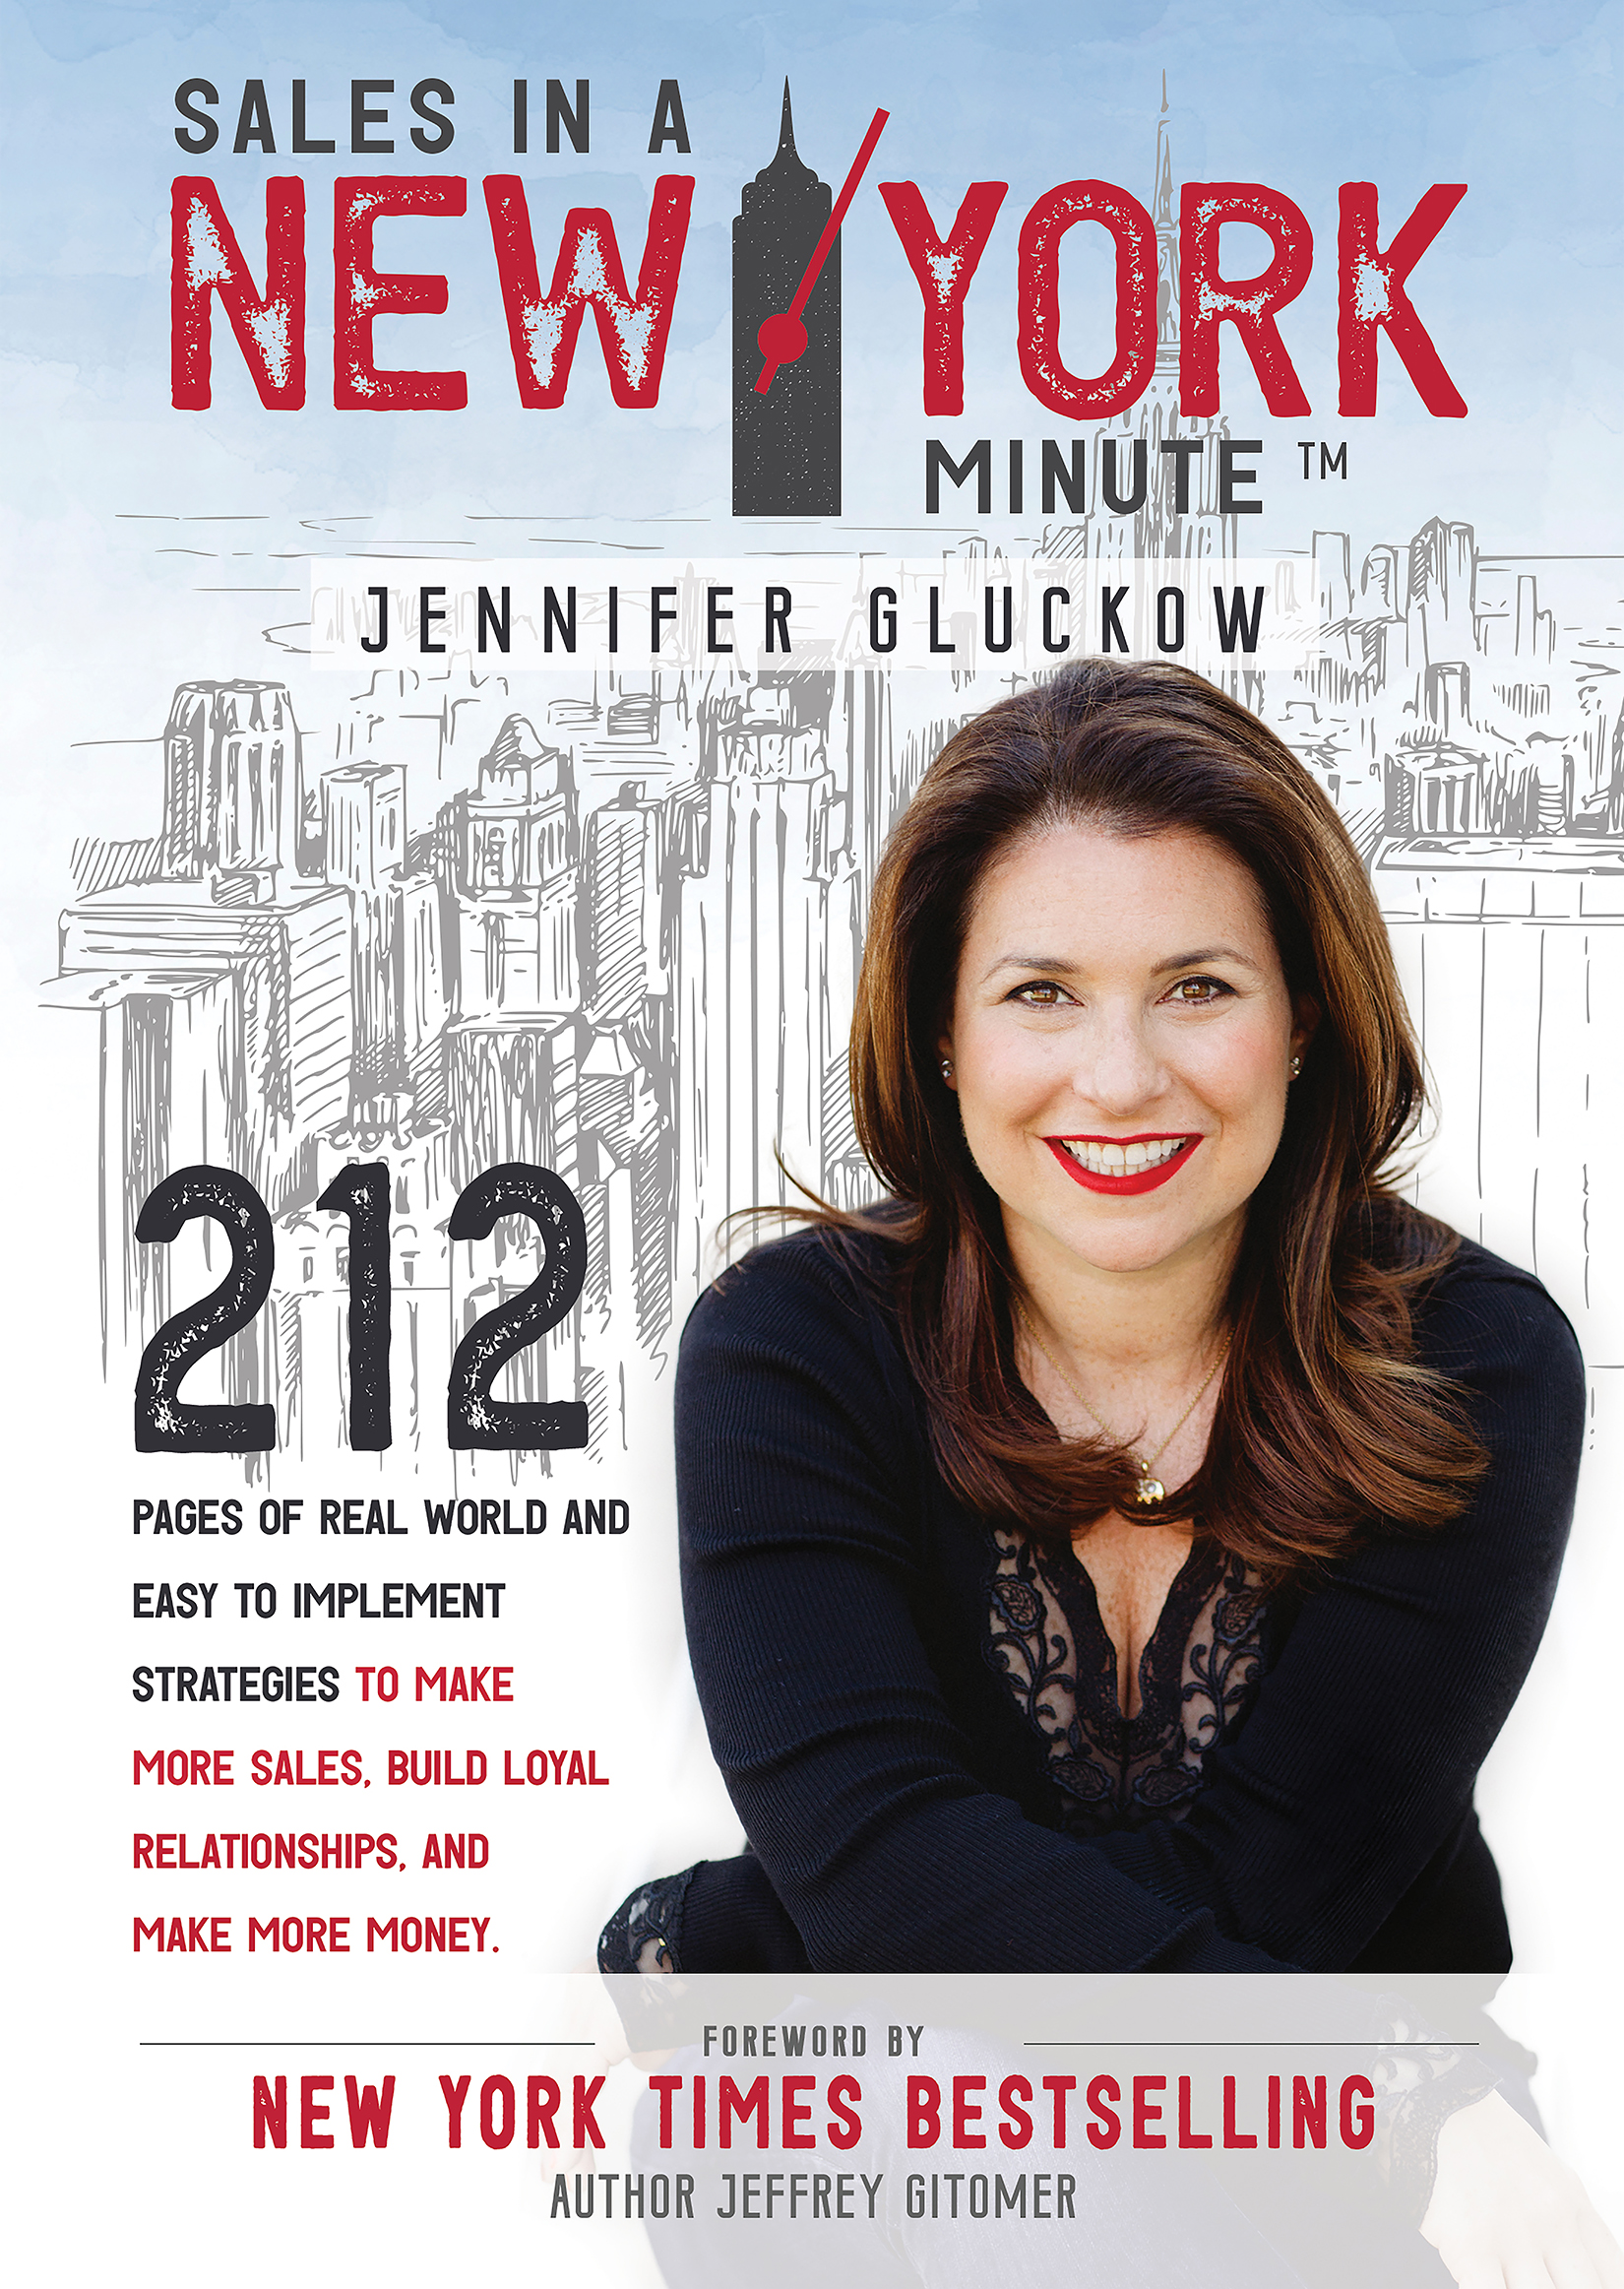 Sales in a New York Minute - Jennifer Gluckow